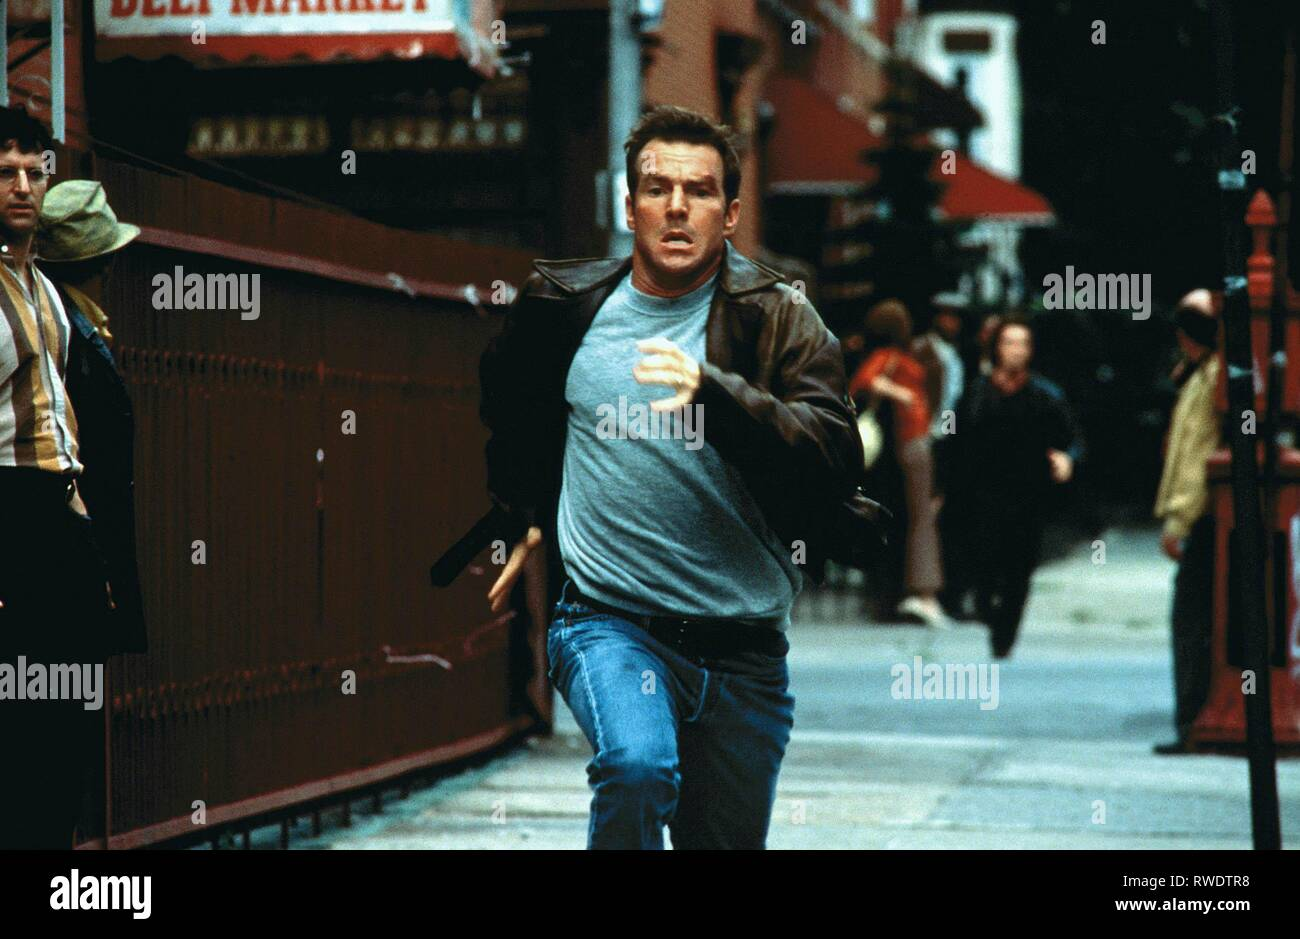 DENNIS QUAID, FREQUENCY, 2000 - Stock Image